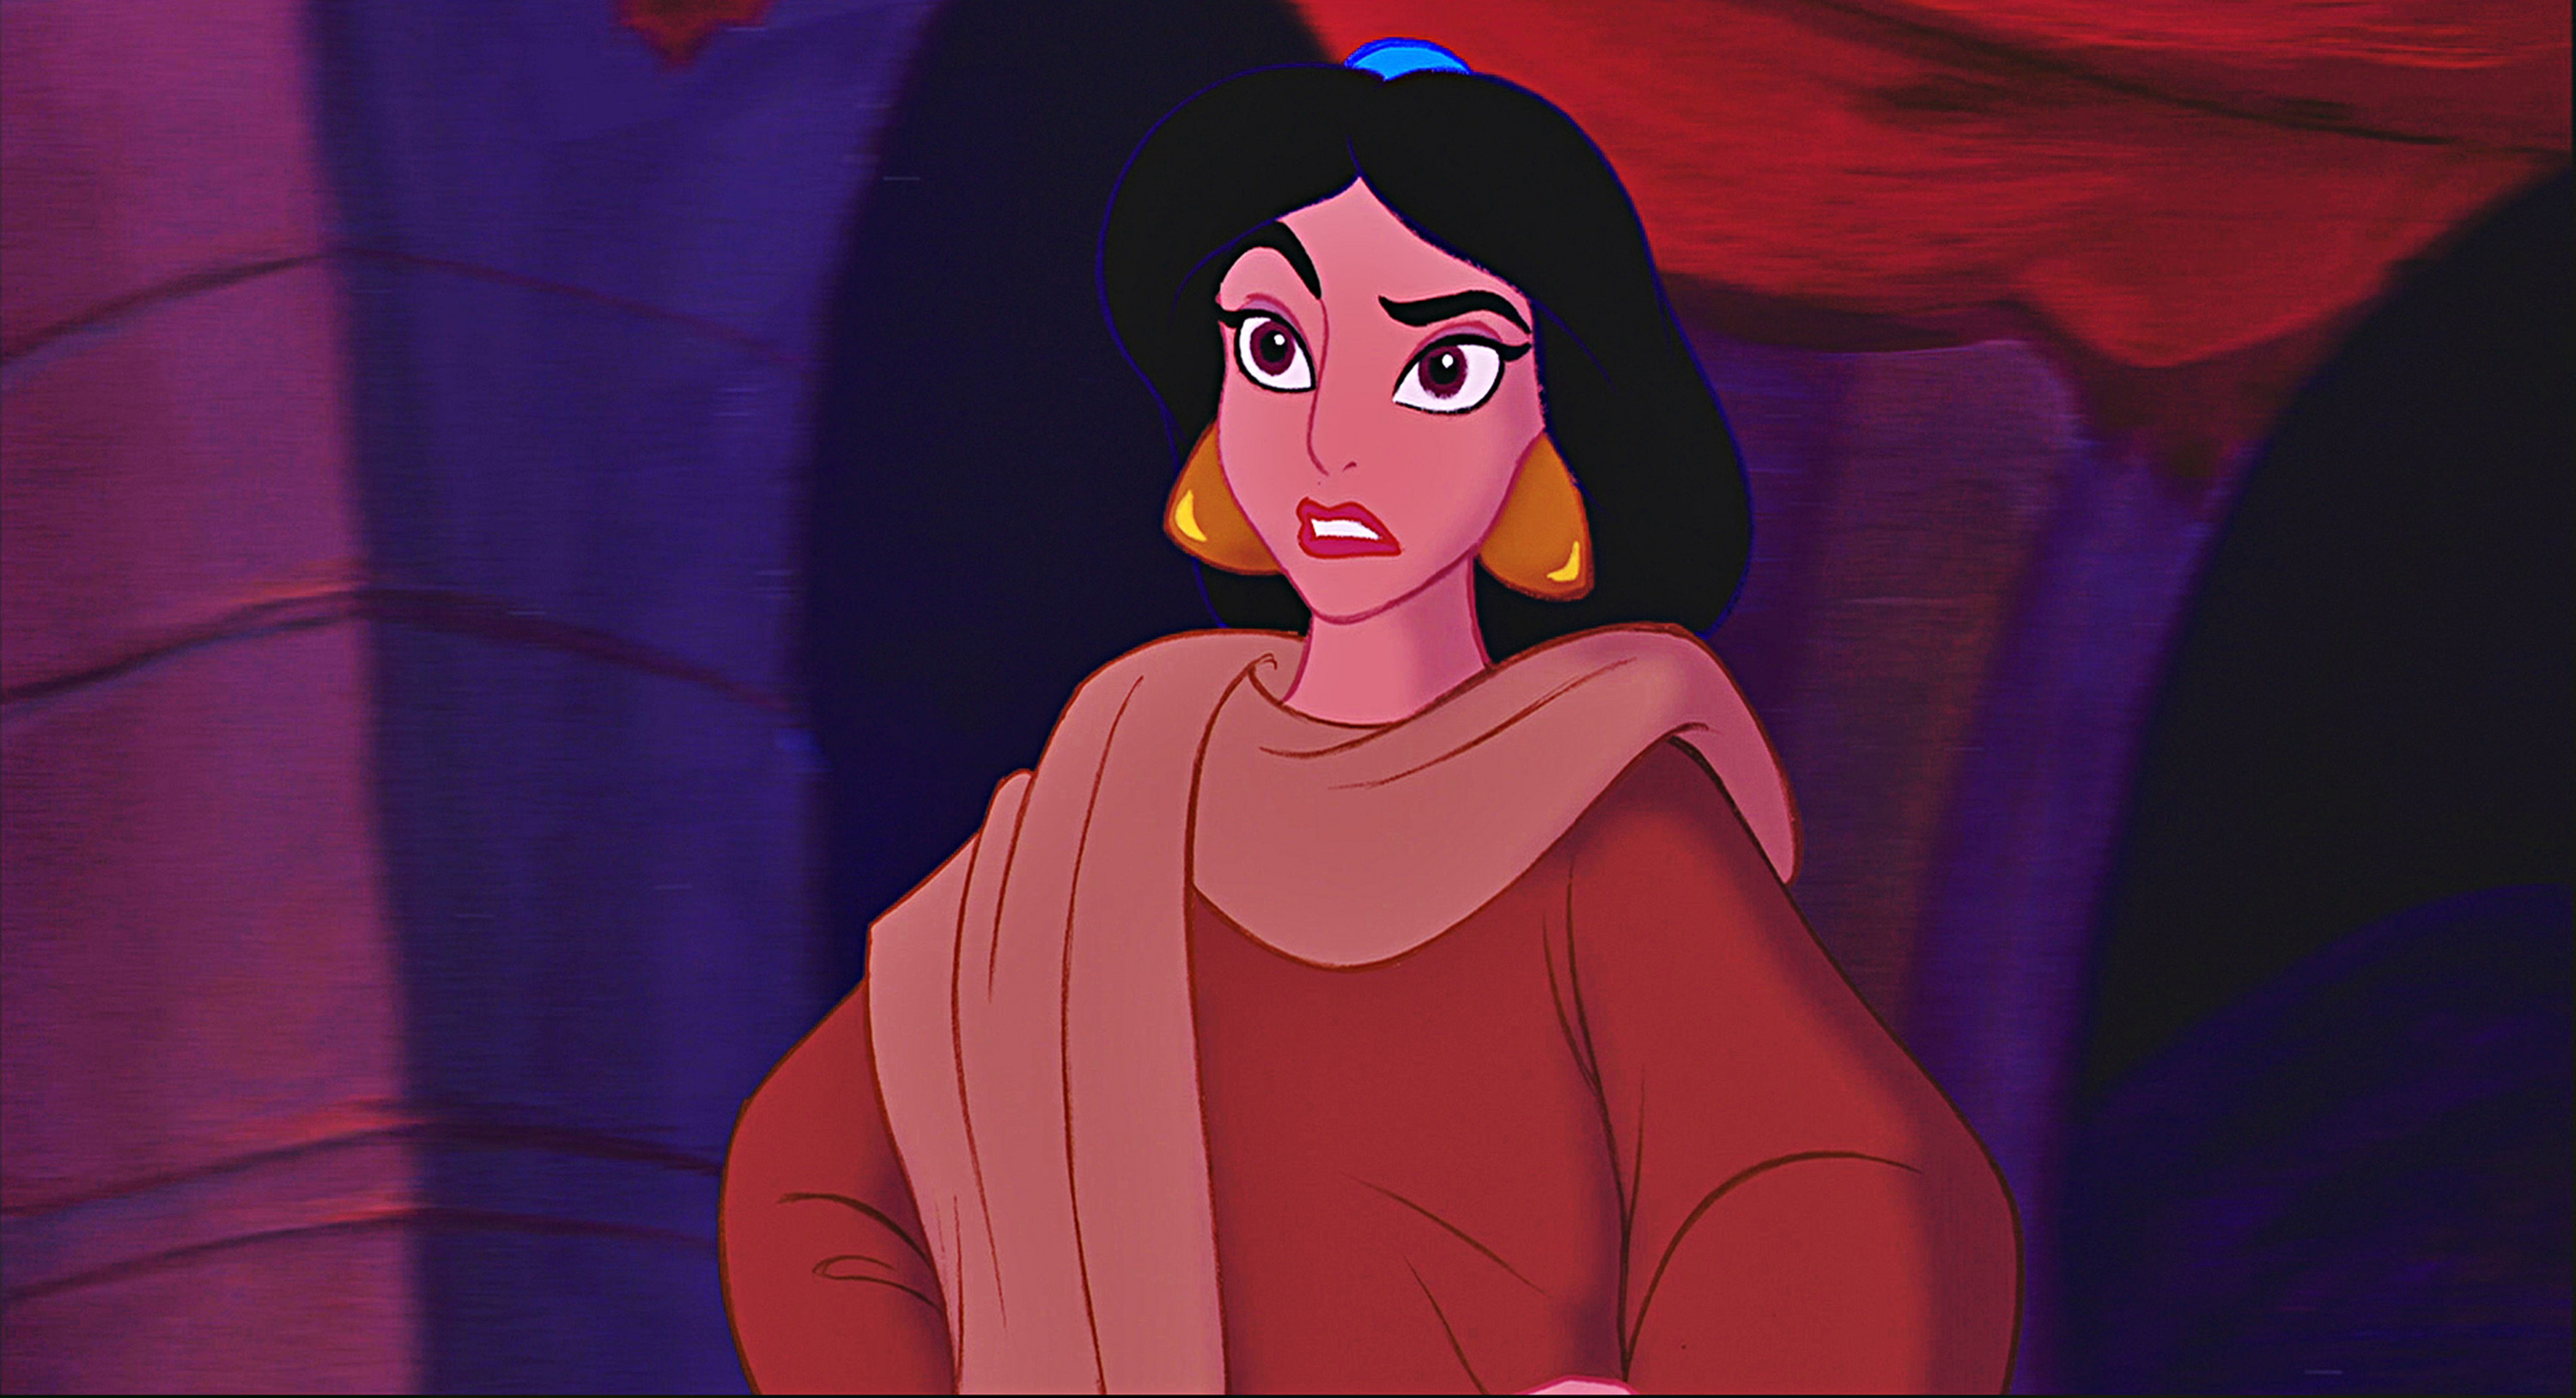 Princess Jasmine Al-Hamed is a fictional character who appears in Walt Disney Pictures' 31st animated feature film Aladdin (1992) and its sequels The Return of Jafar (1994) and Aladdin and the King of Thieves (1996), as well as its television series.